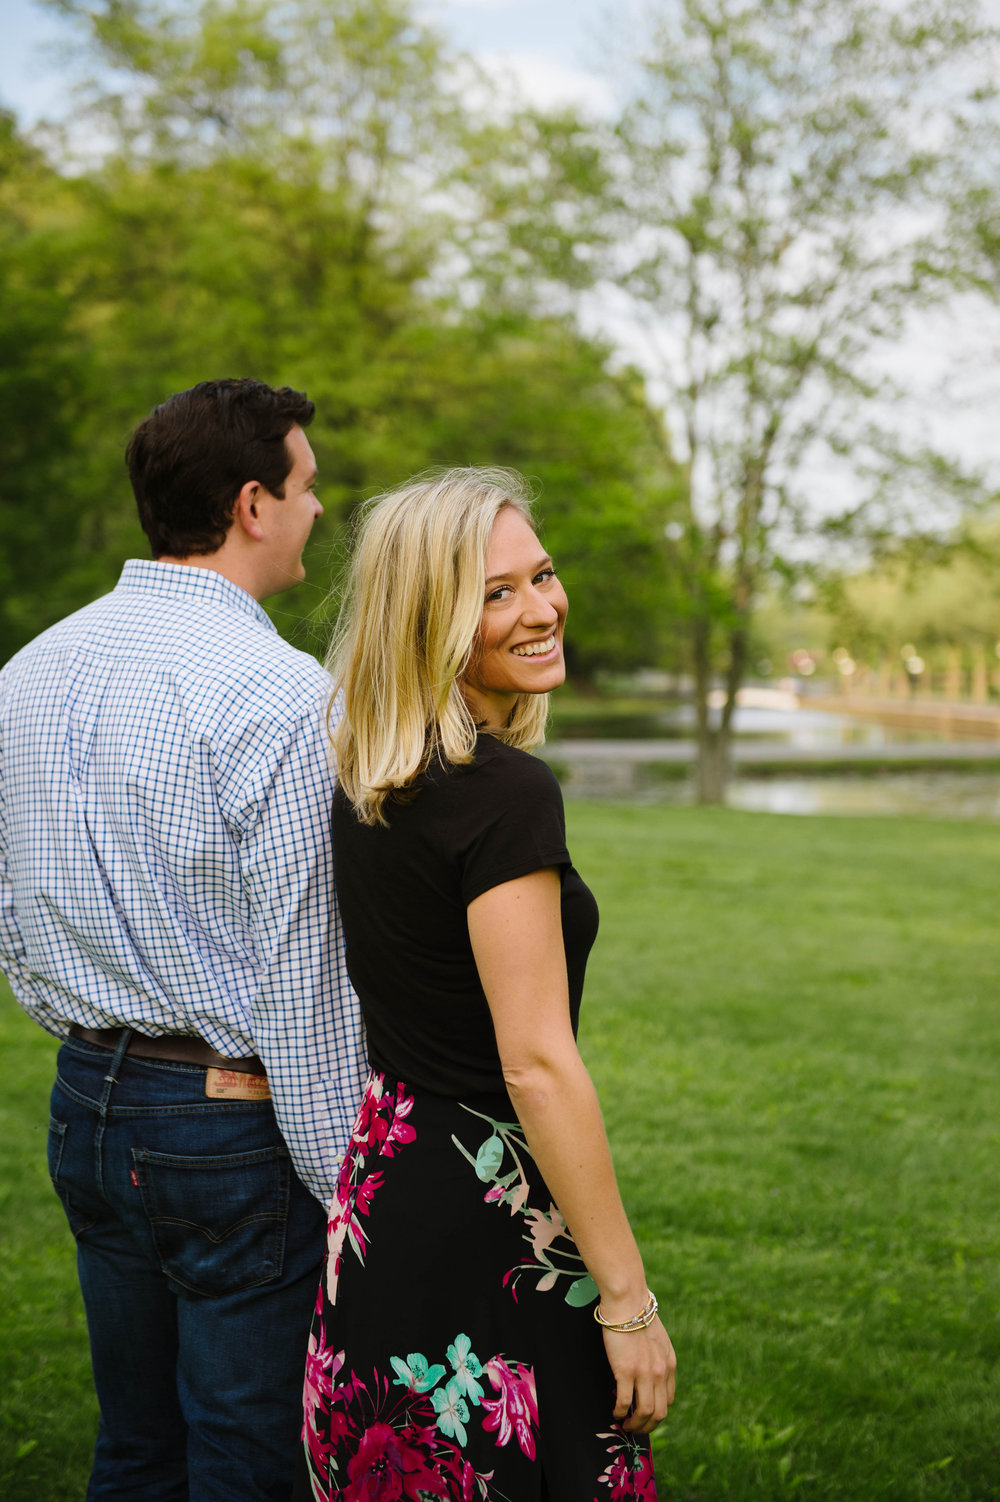 Rustic-Engagement-Session006.jpg